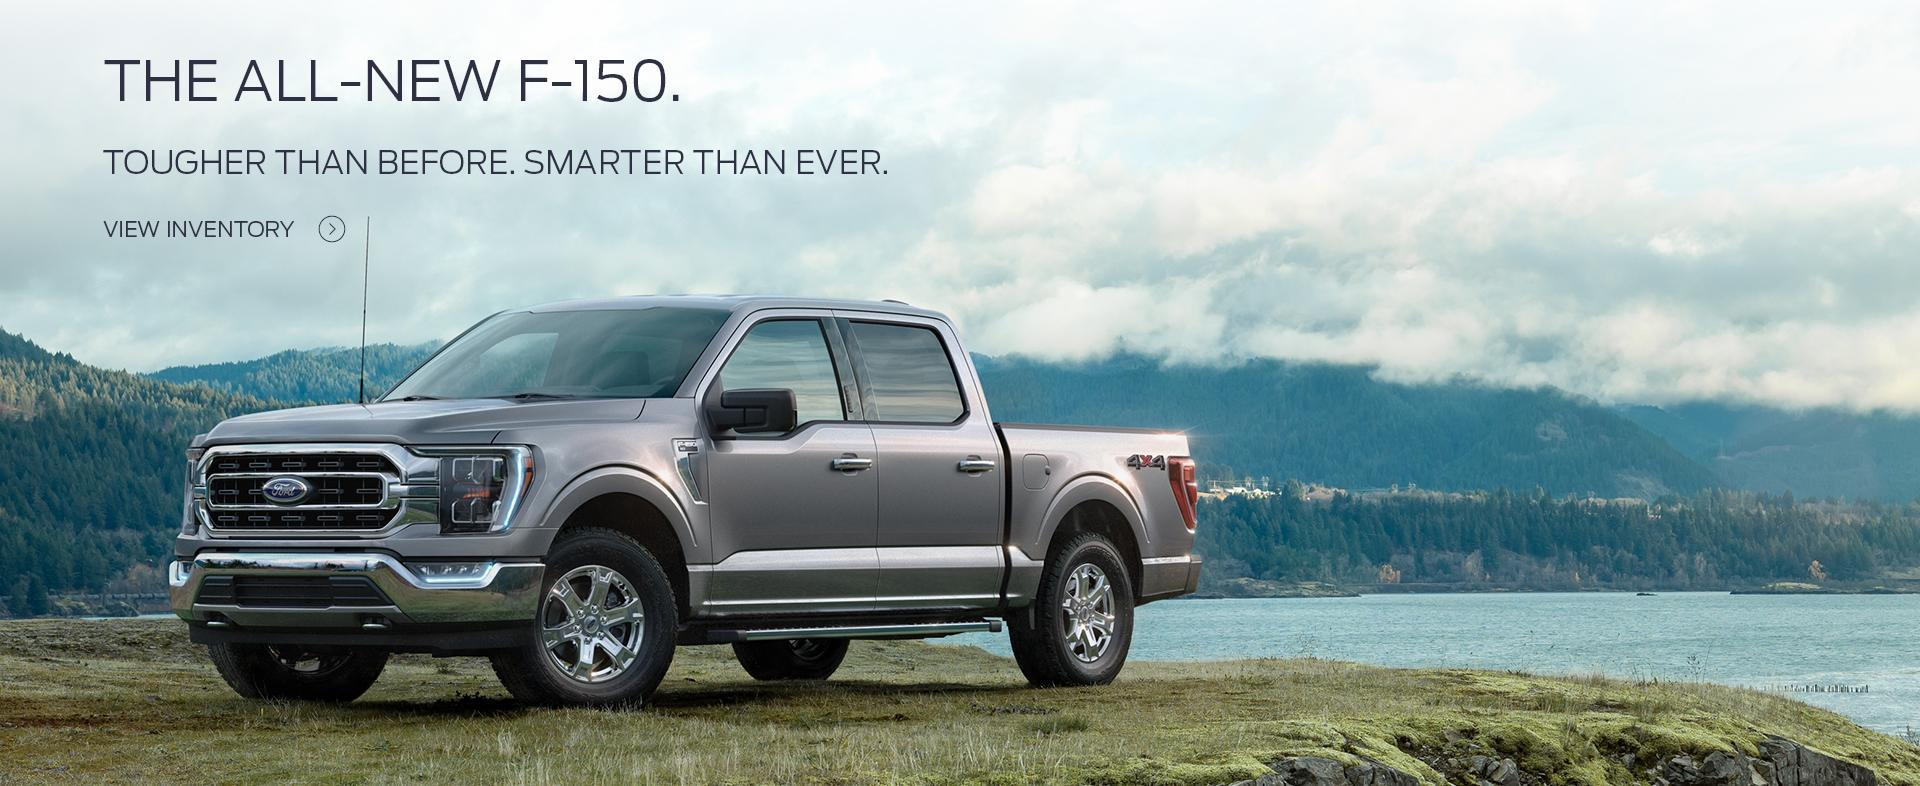 Ford Home | Taylor Ford Amherst | Amherst Ford Dealership  2021 F-150